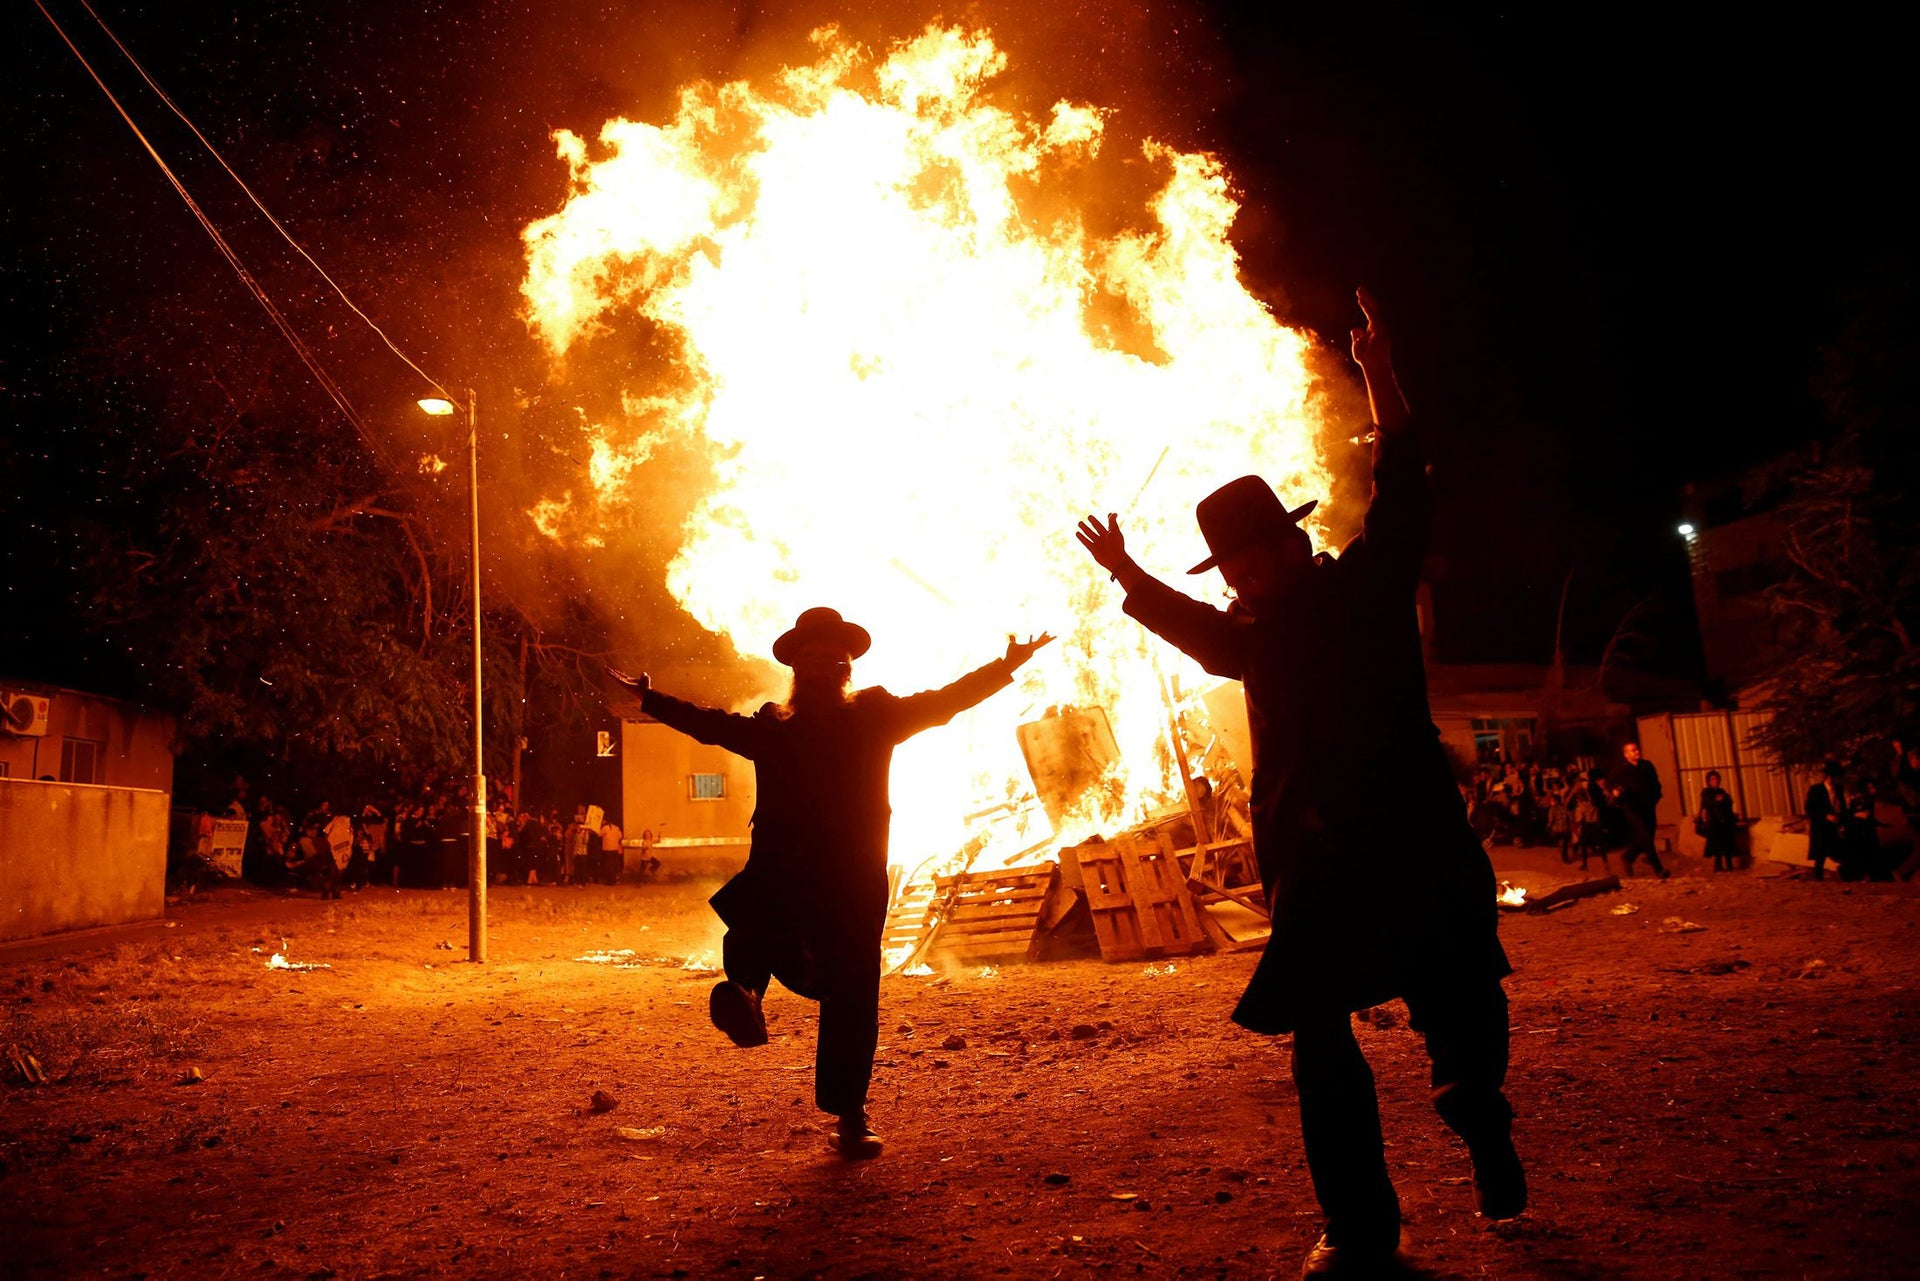 Ultra-Orthodox Jews dance next to a bonfire during celebrations for the Jewish holiday of Lag Ba'omer in Jerusalem's Mea Shearim neighborhood May 25, 2016.